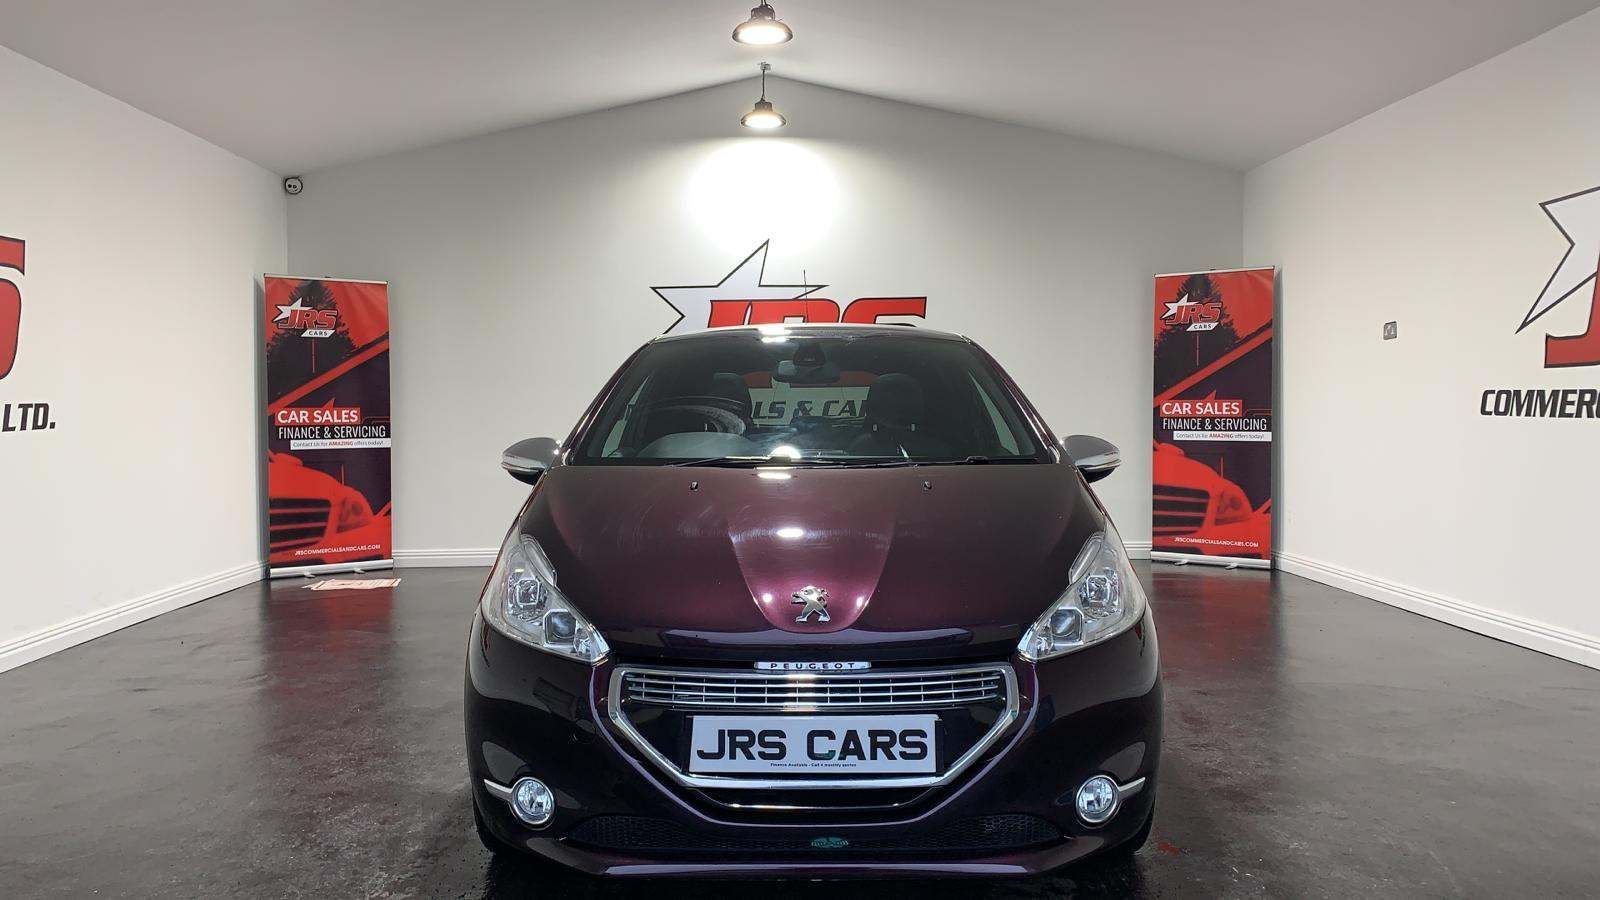 2013 PEUGEOT 208 1.6 VTi XY Petrol Manual **Pan Roof-Half Leather** – J R S Commercials And Cars Dungannon full